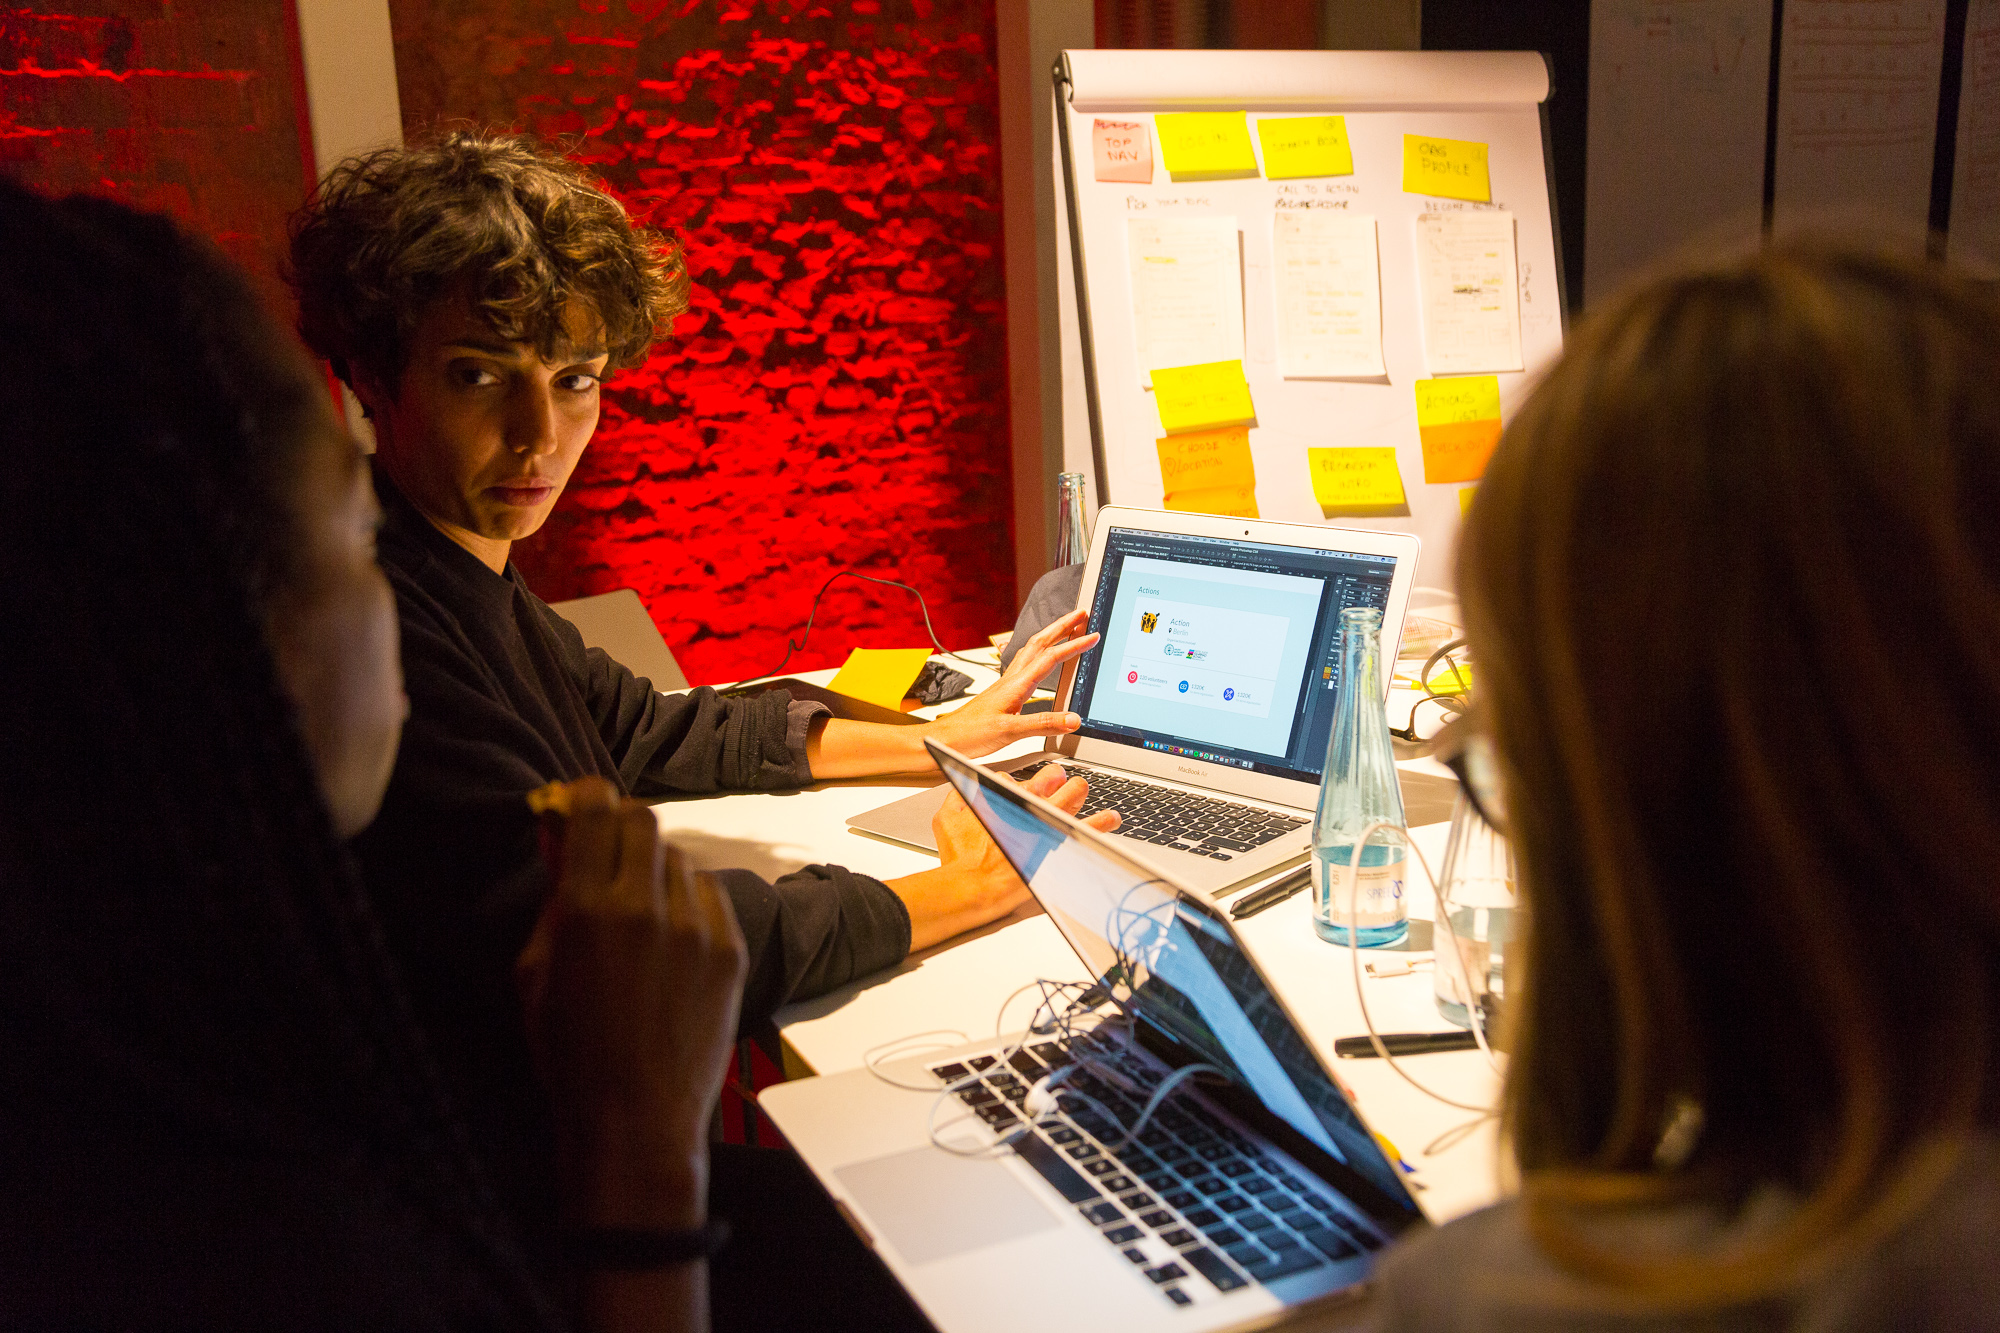 Using design thinking exercises to help others create fast prototypes and test them before they spend energy on the wrong idea. -